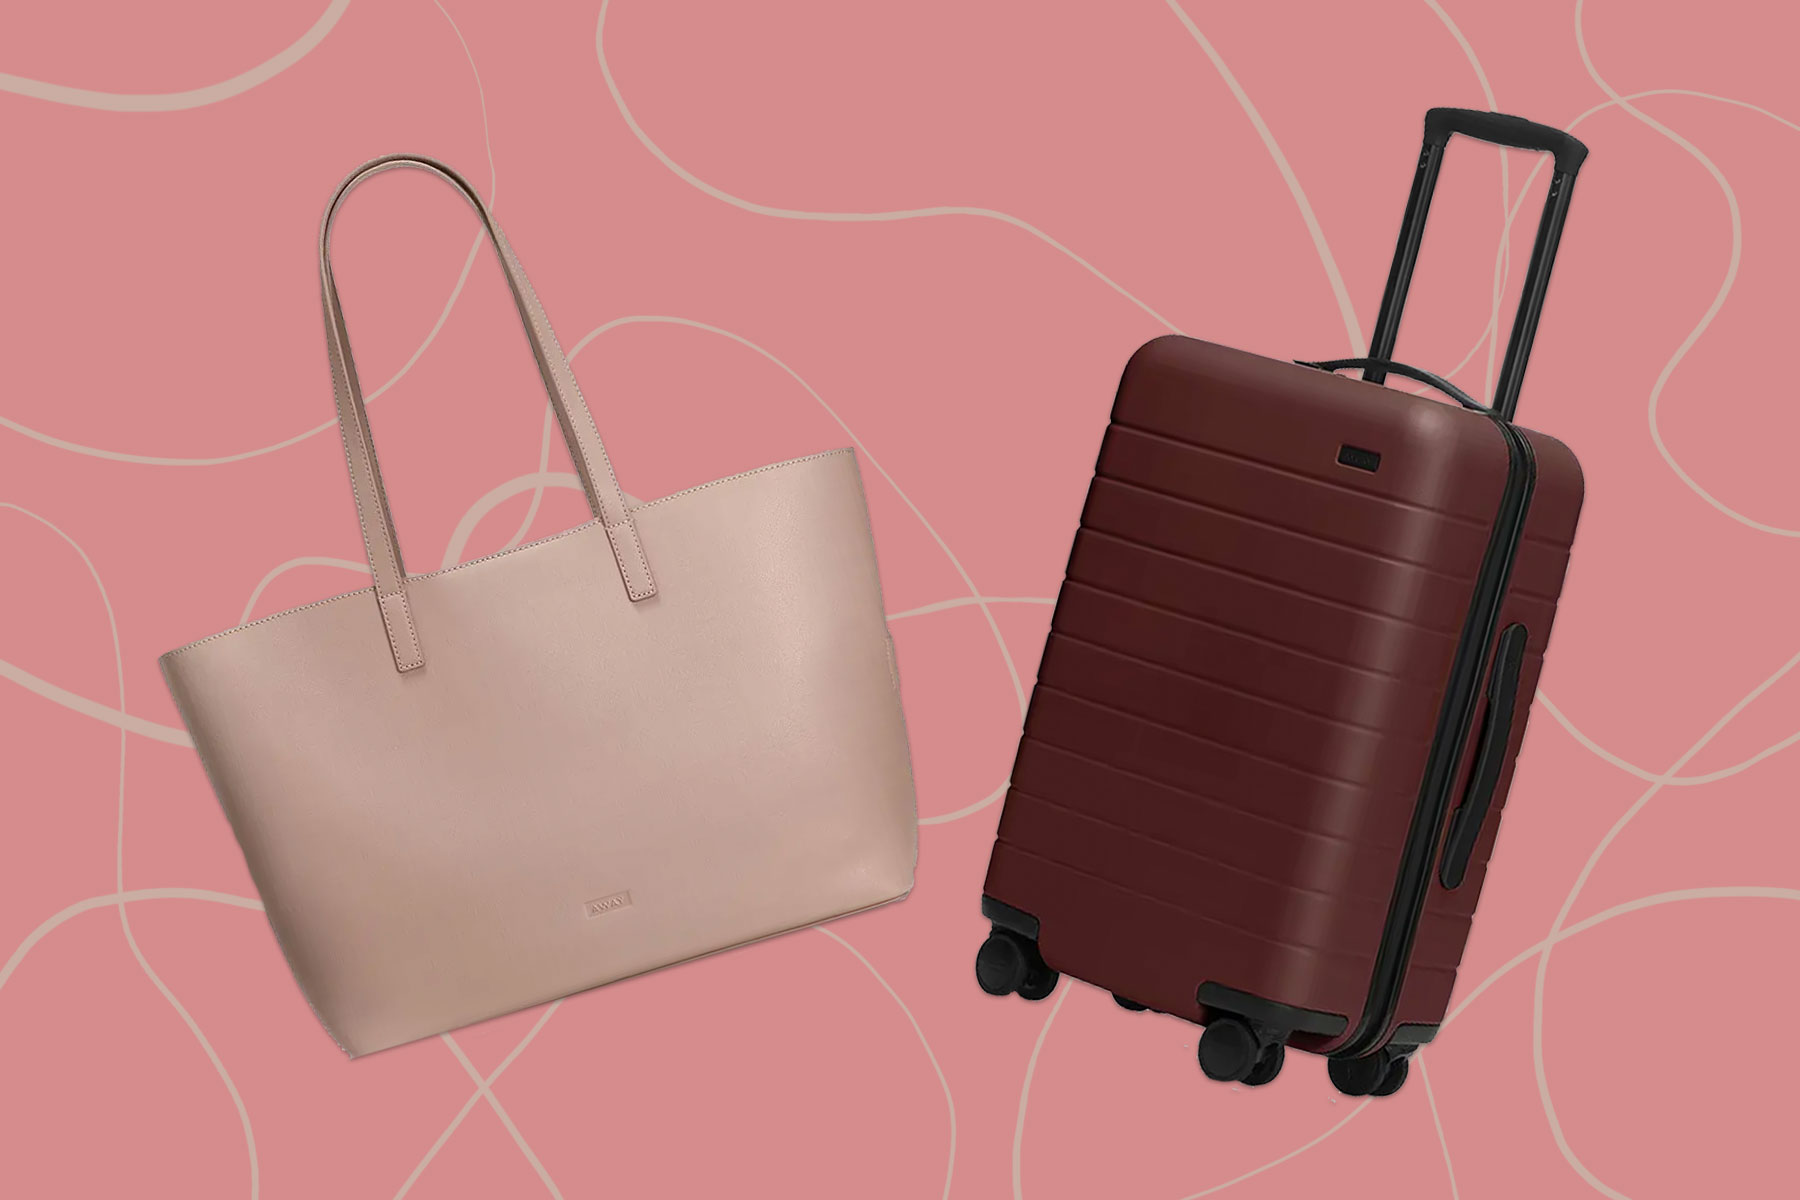 Light pink leather tote and dark red hardside suitcase